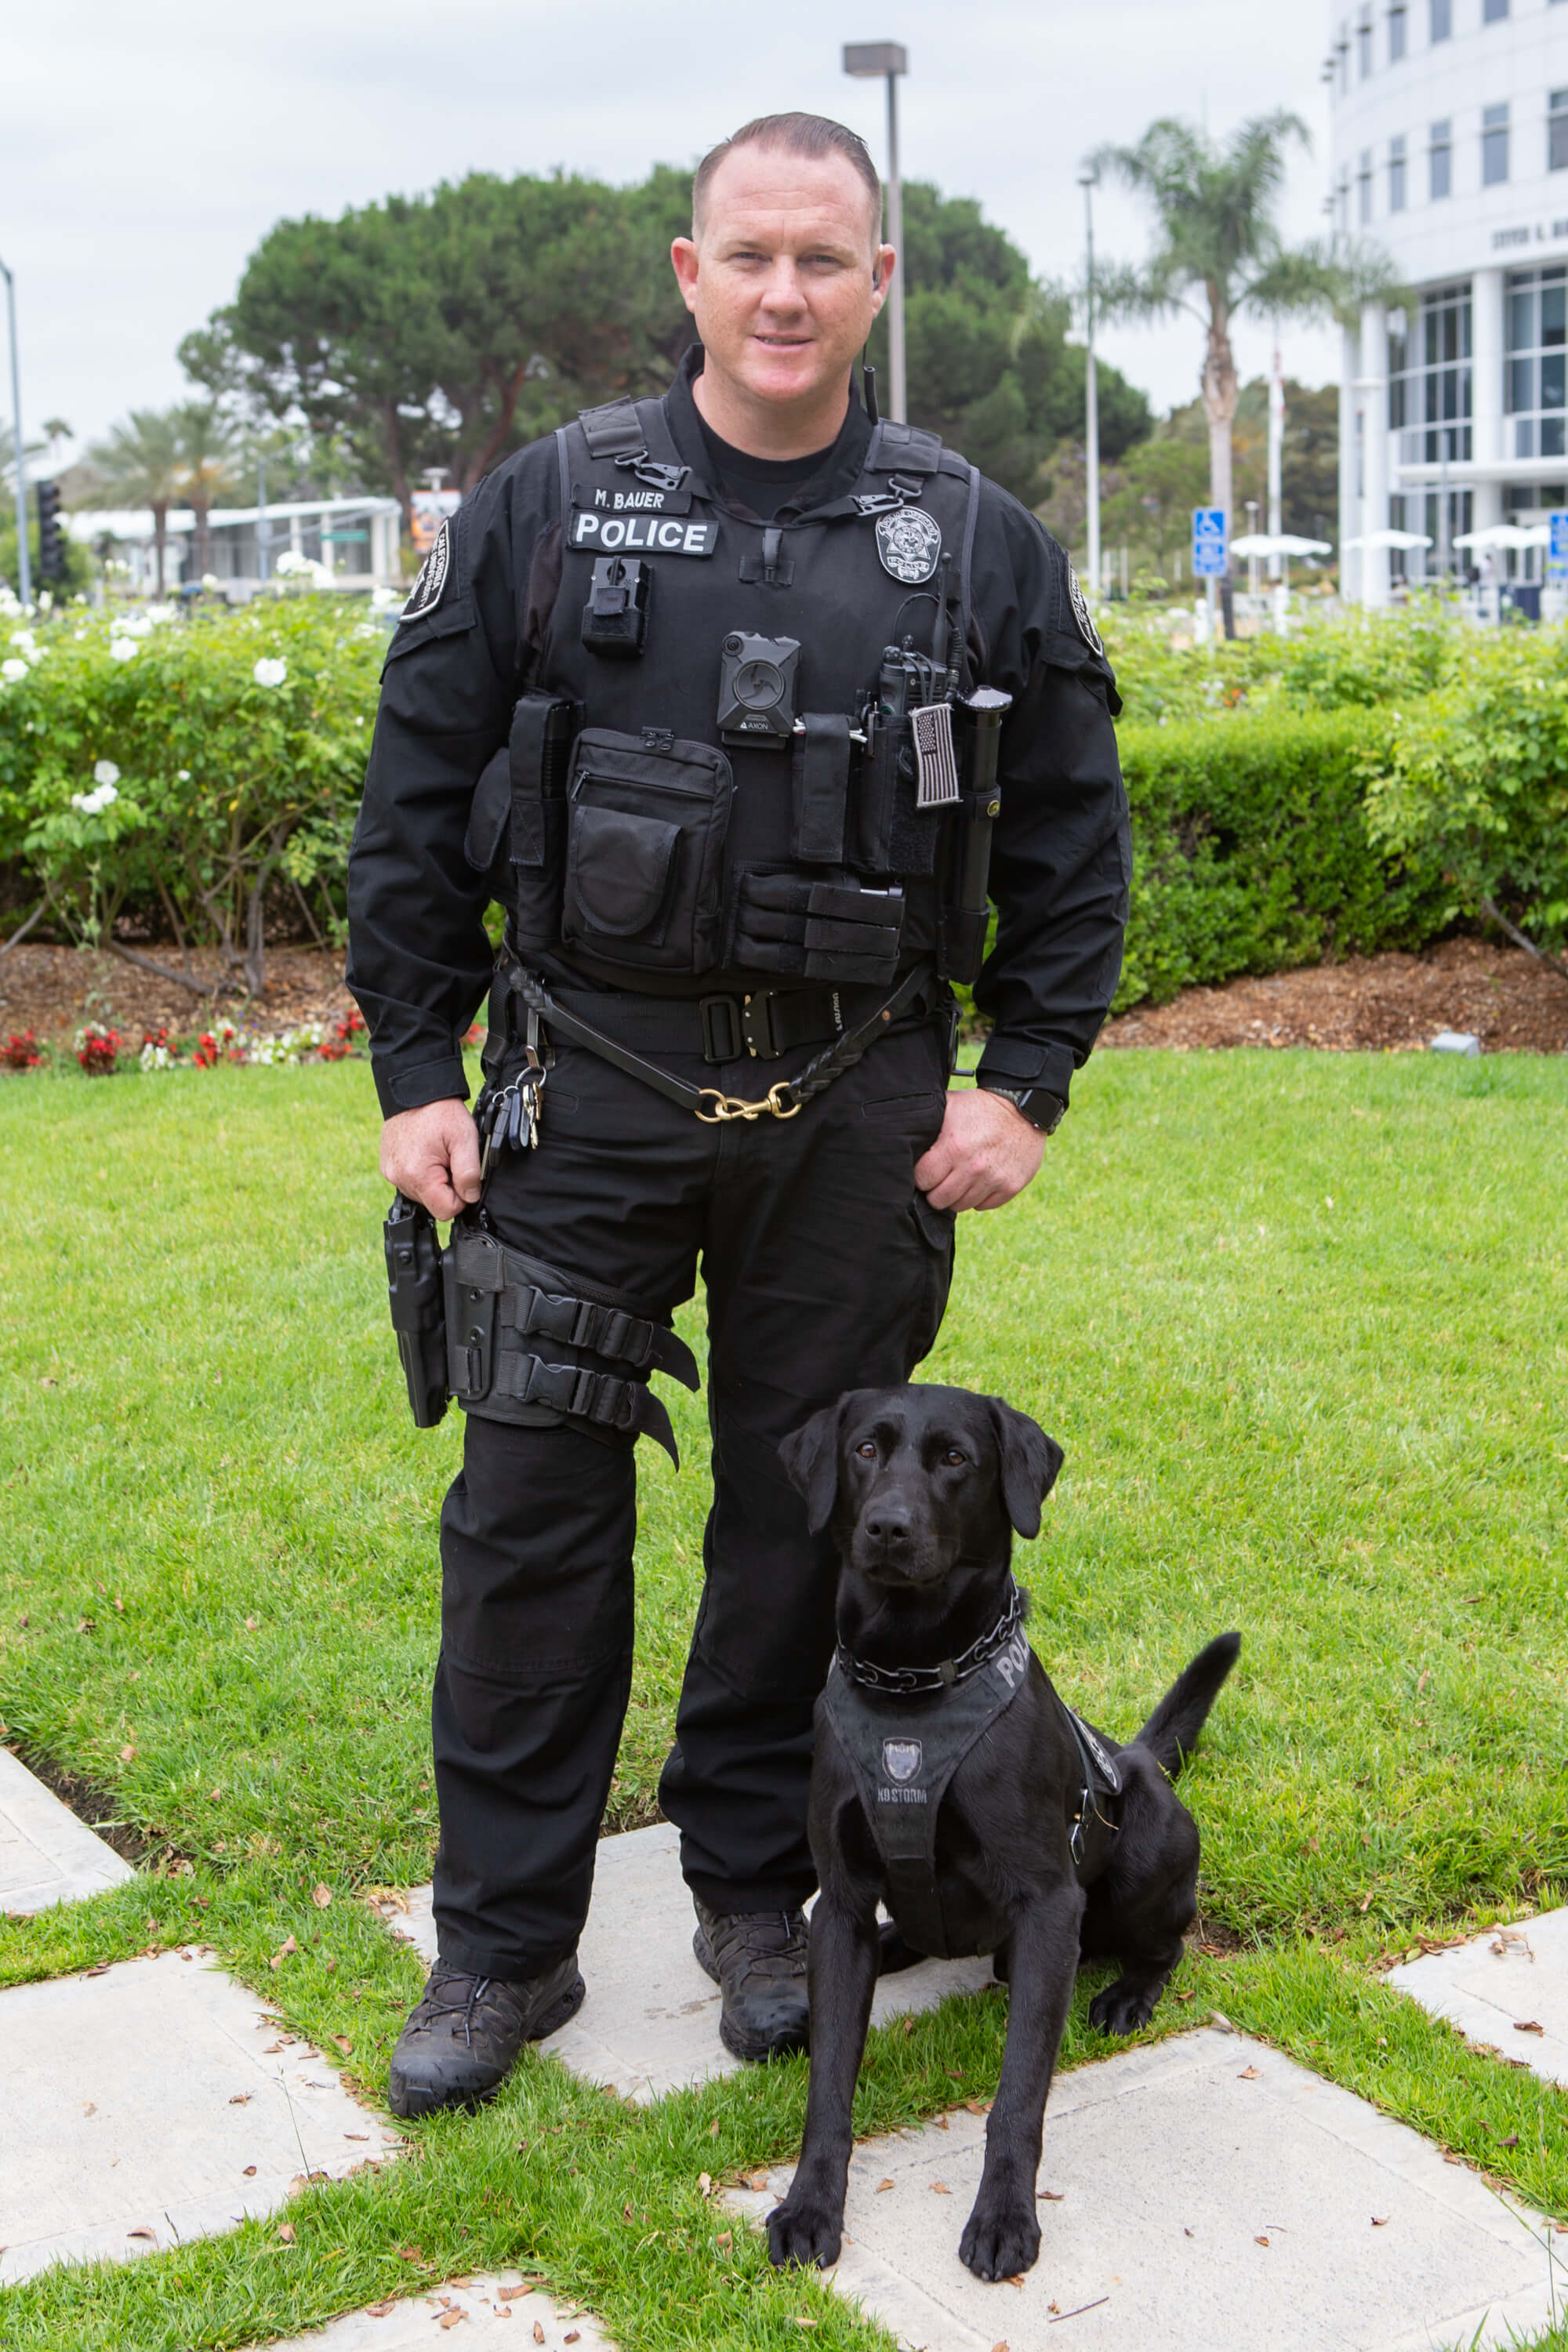 Officer Bauer and his black Lab Glock, both in uniform.